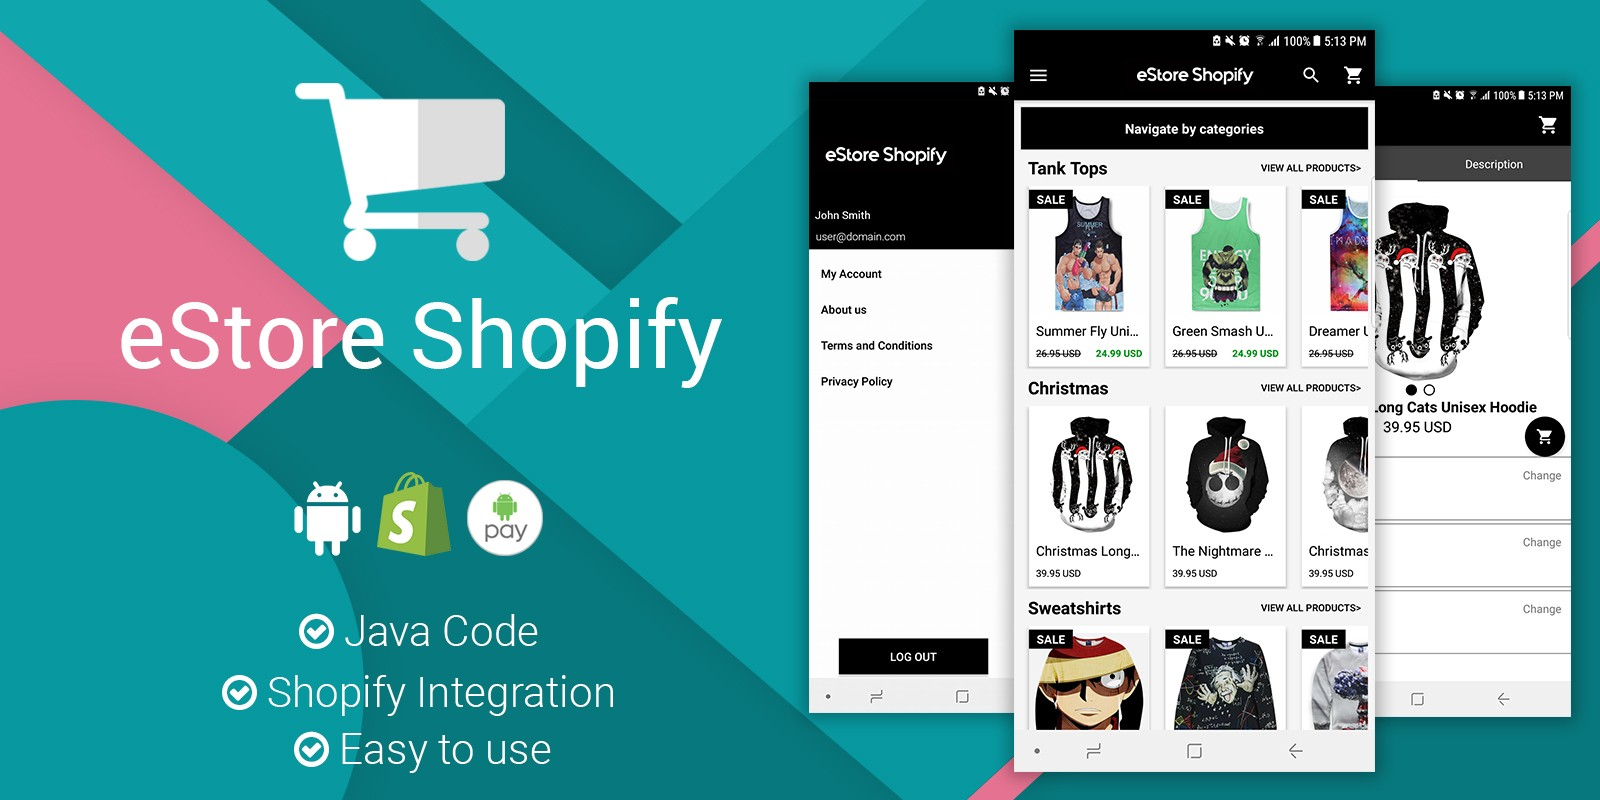 eStore Shopify - Android App Source Code